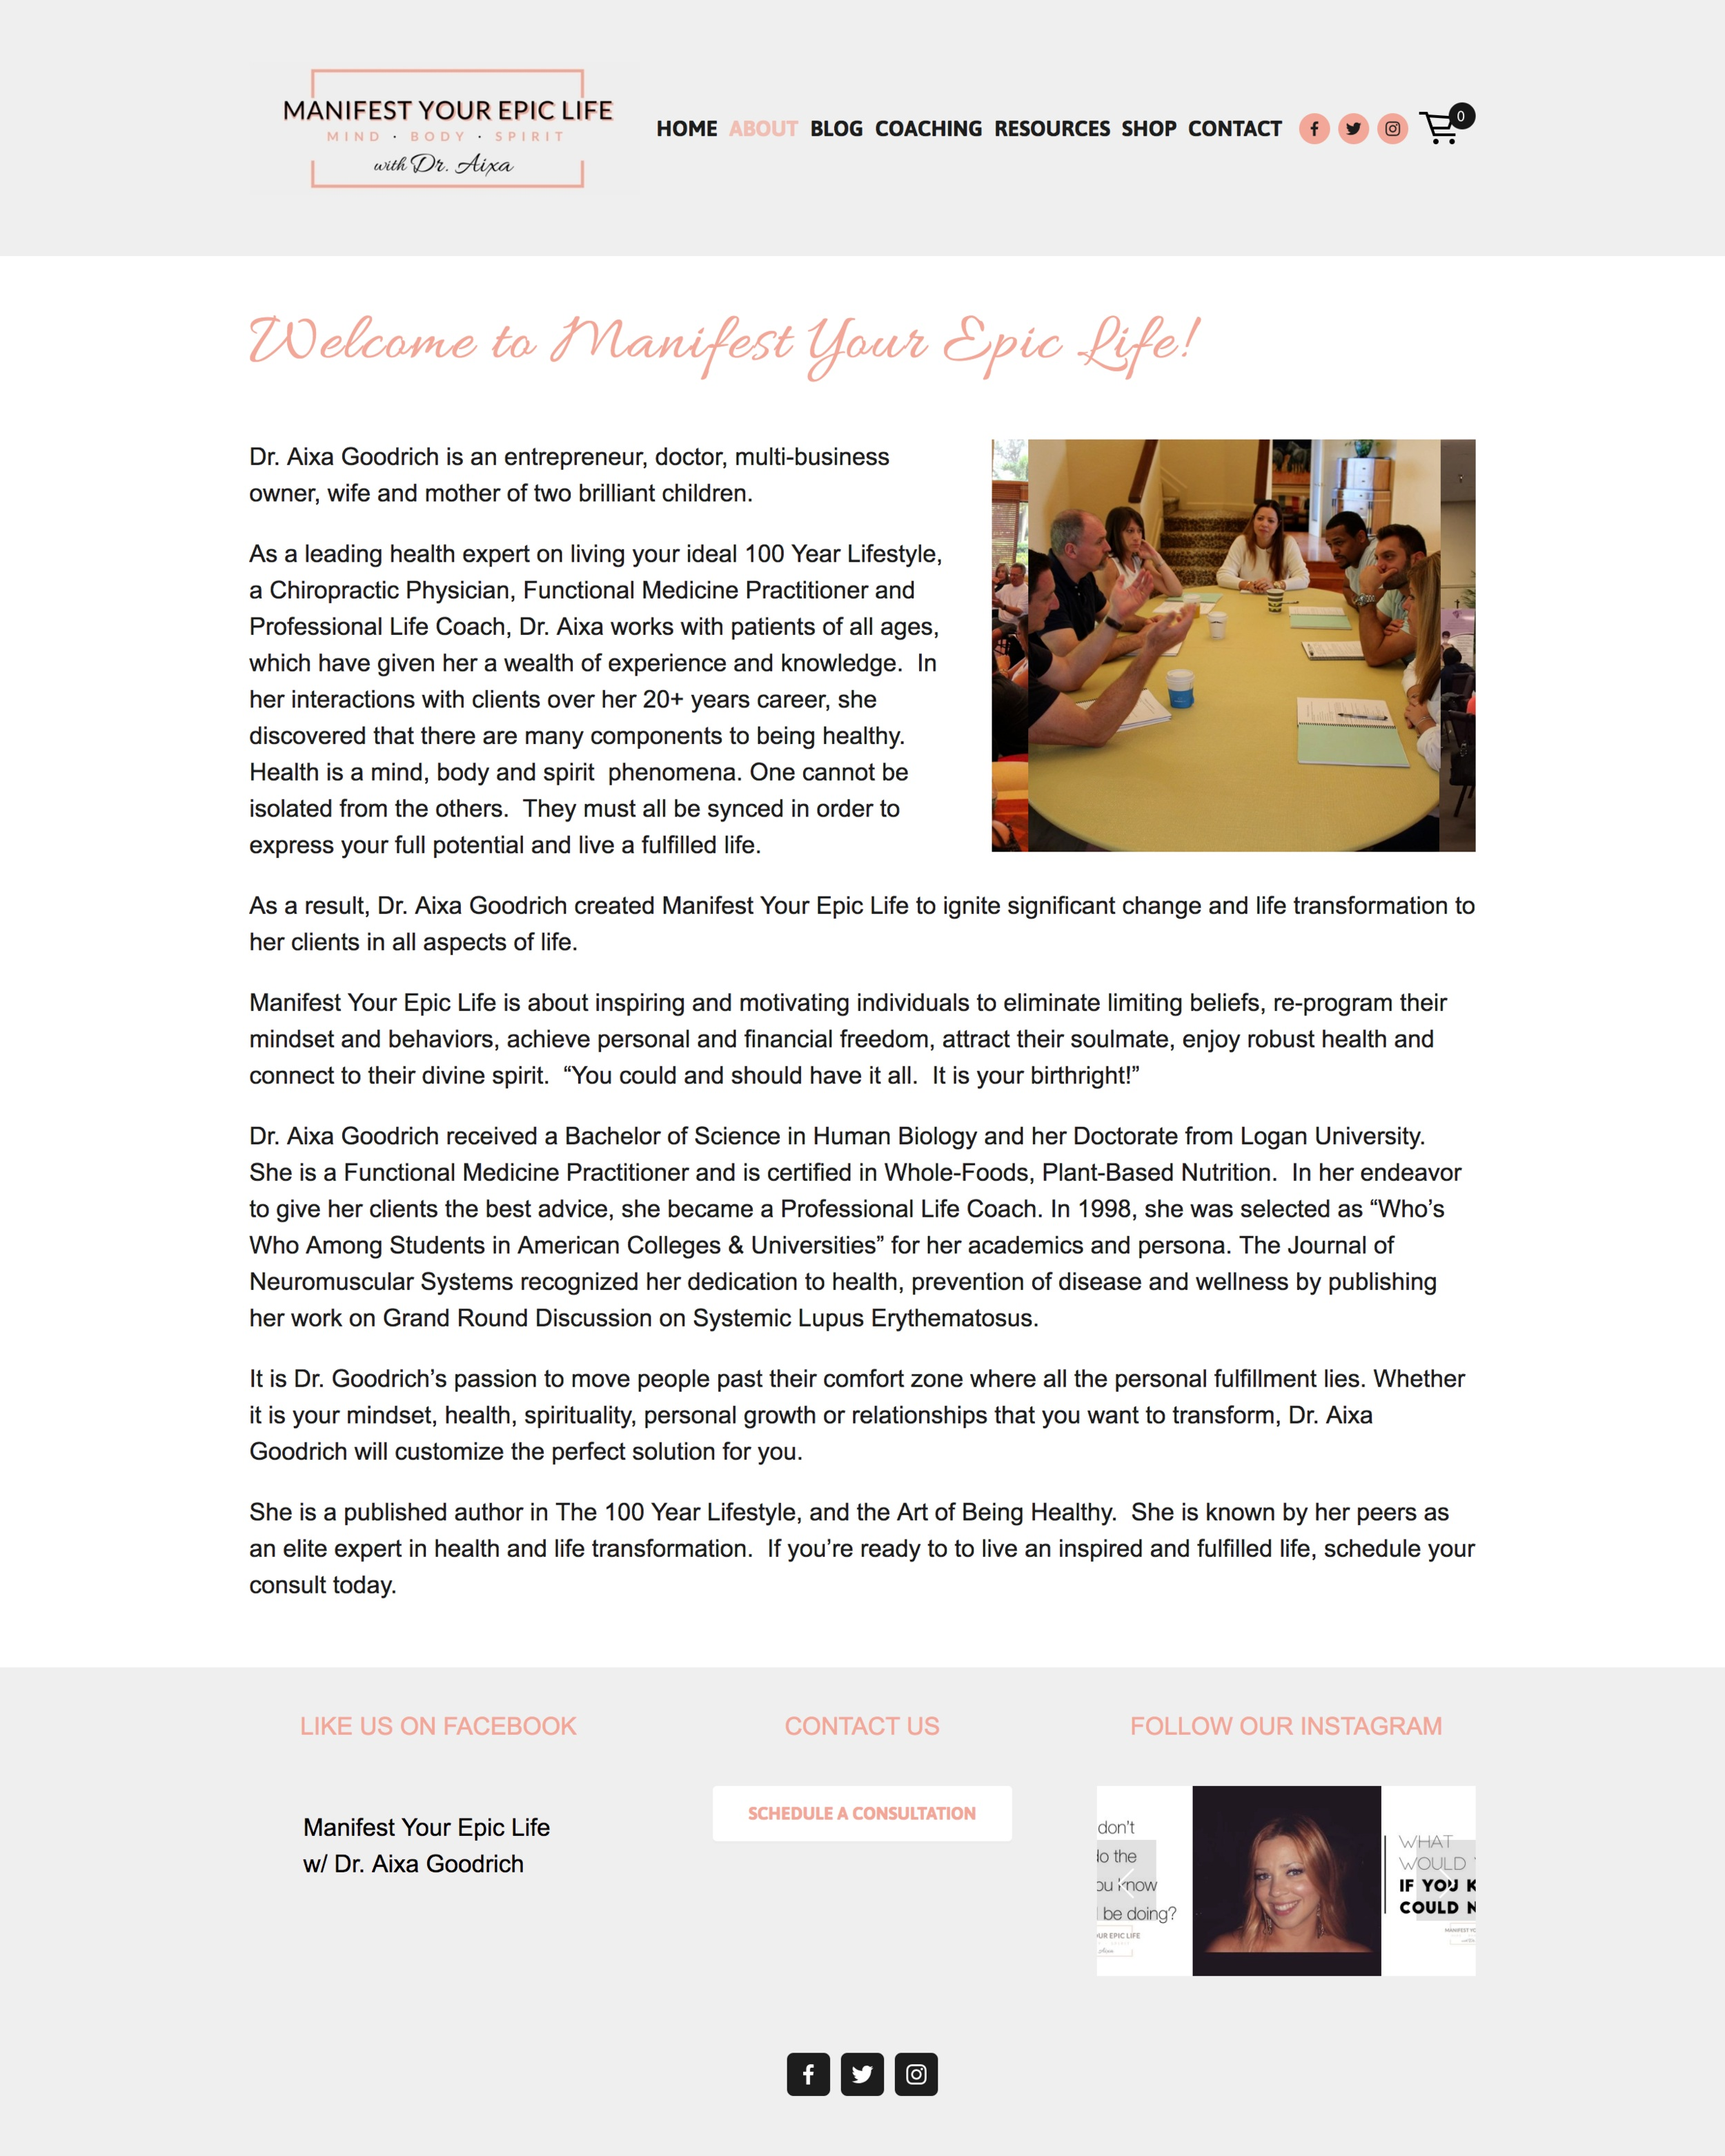 screencapture-manifestyourepiclife-dr-aixa-goodrich-2019-03-06-12_43_02.png